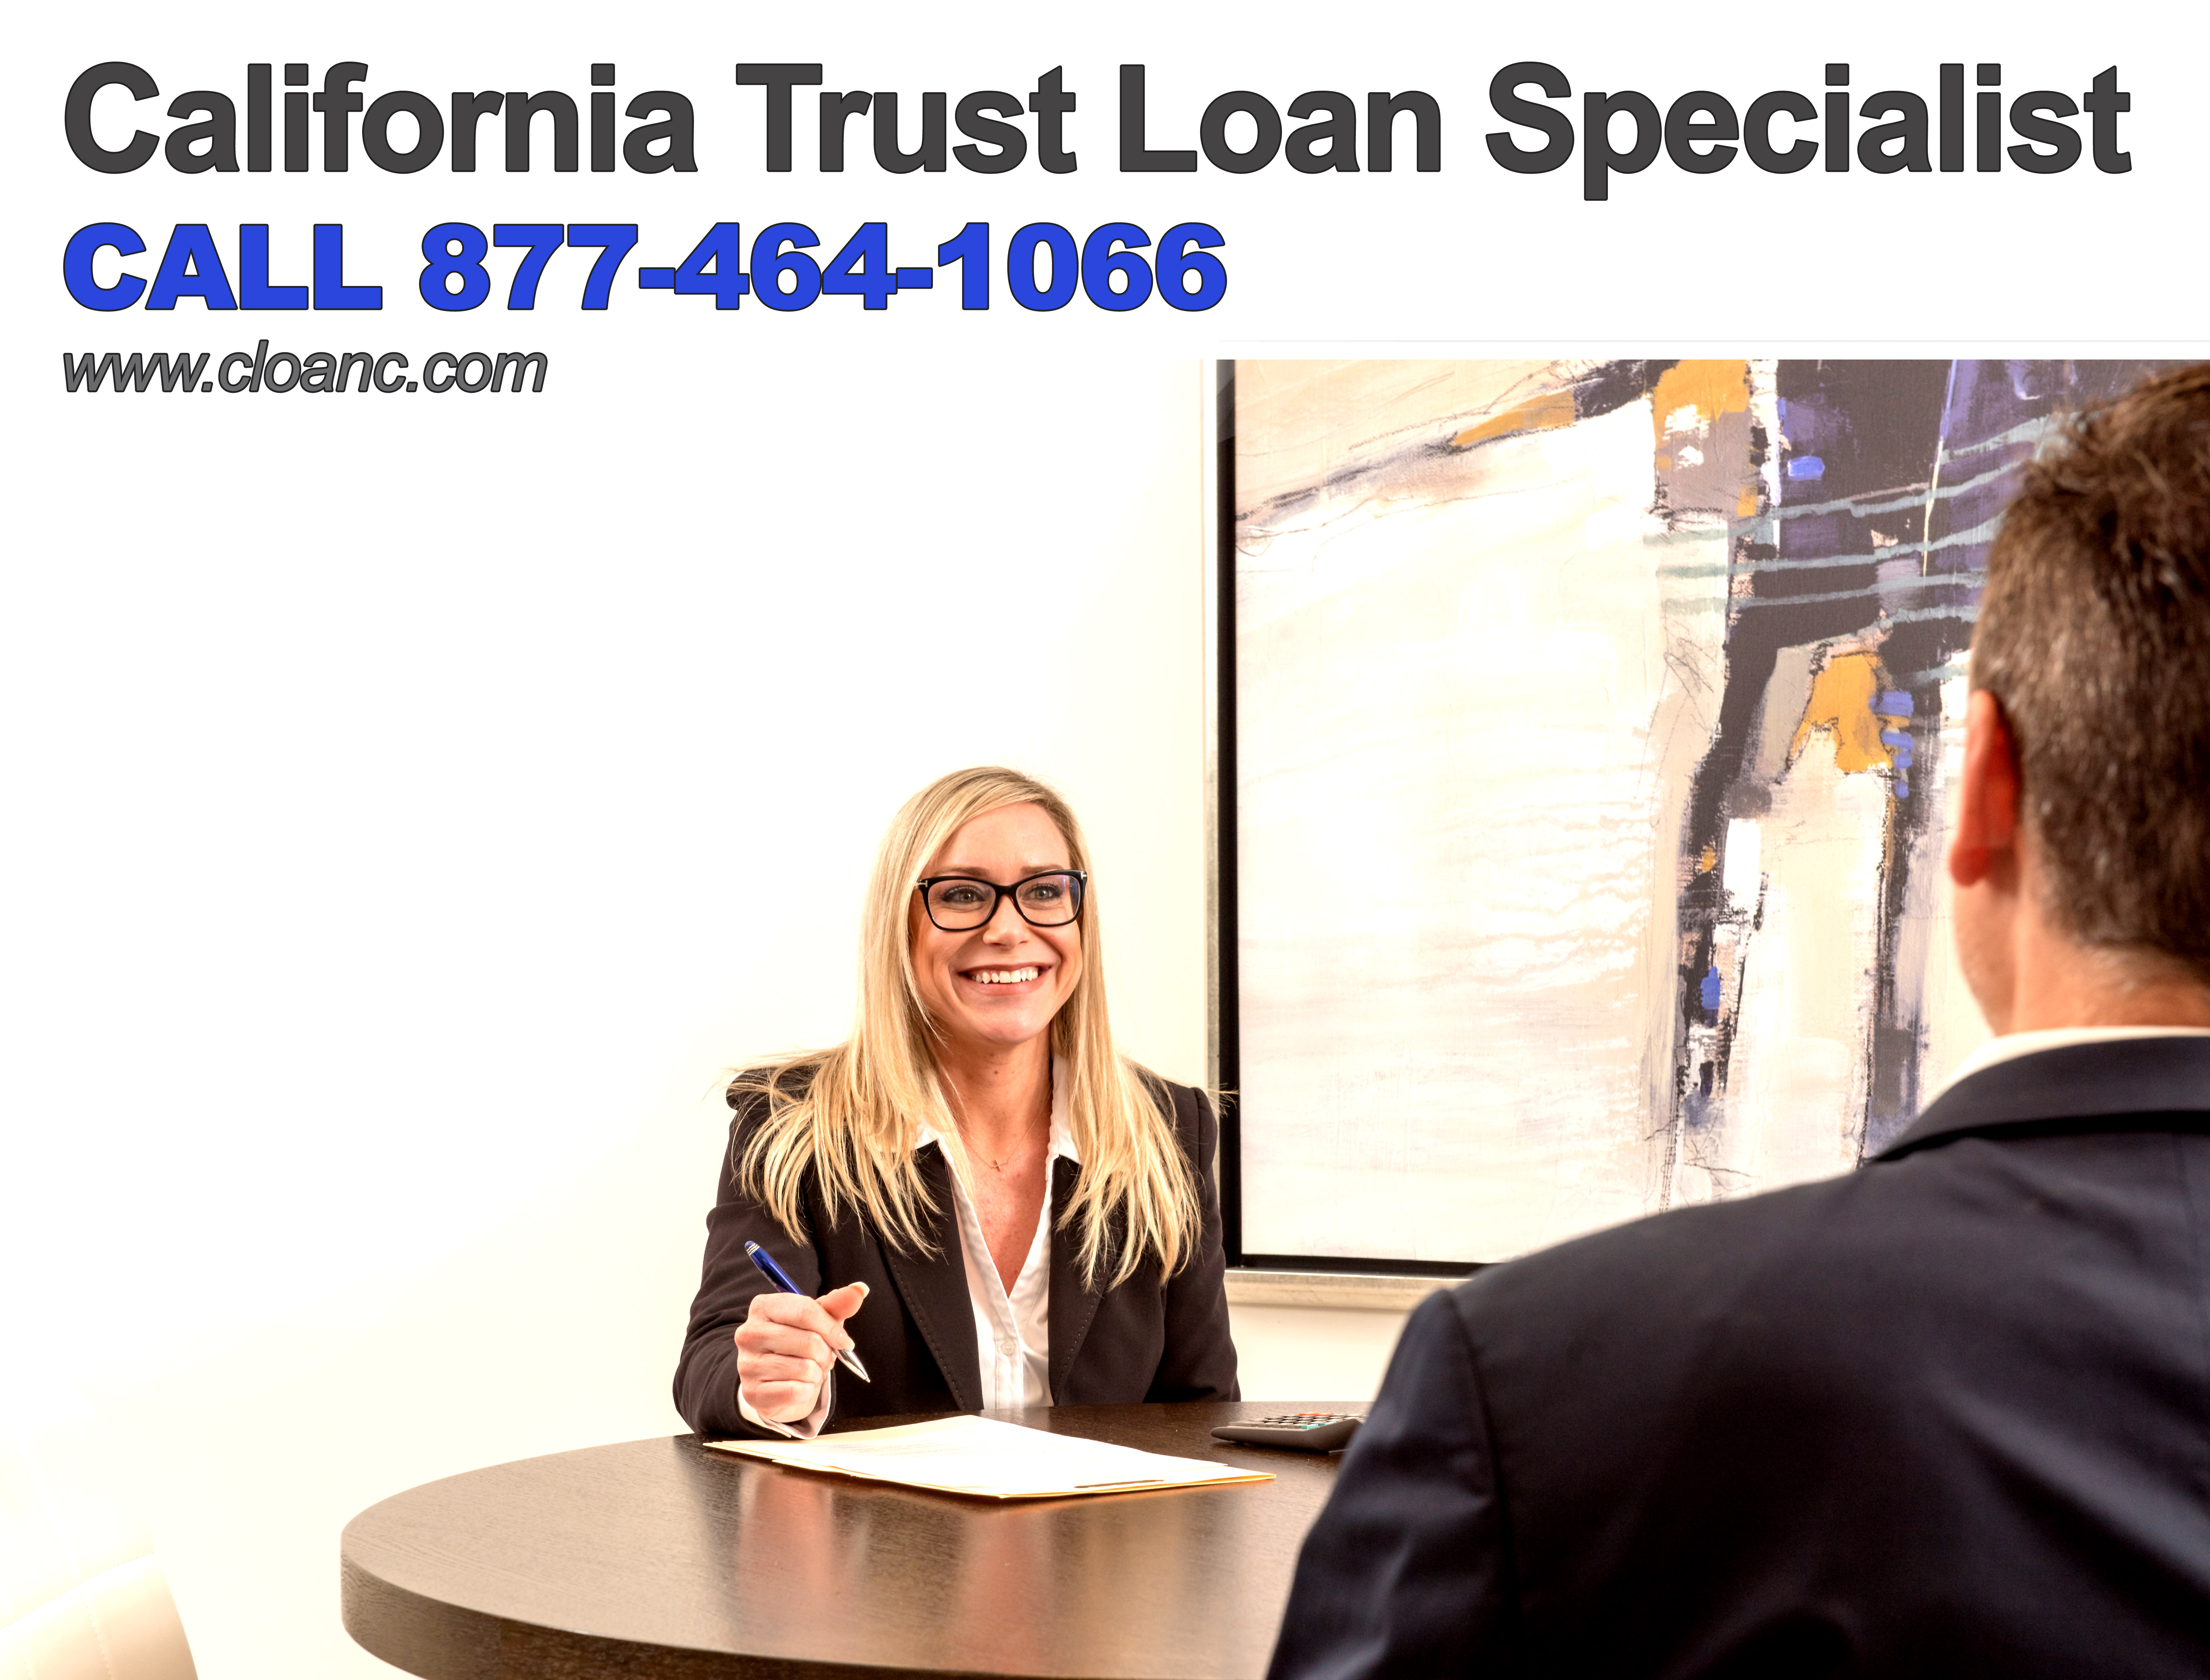 Your California Irrevocable Trust Loan Specialist